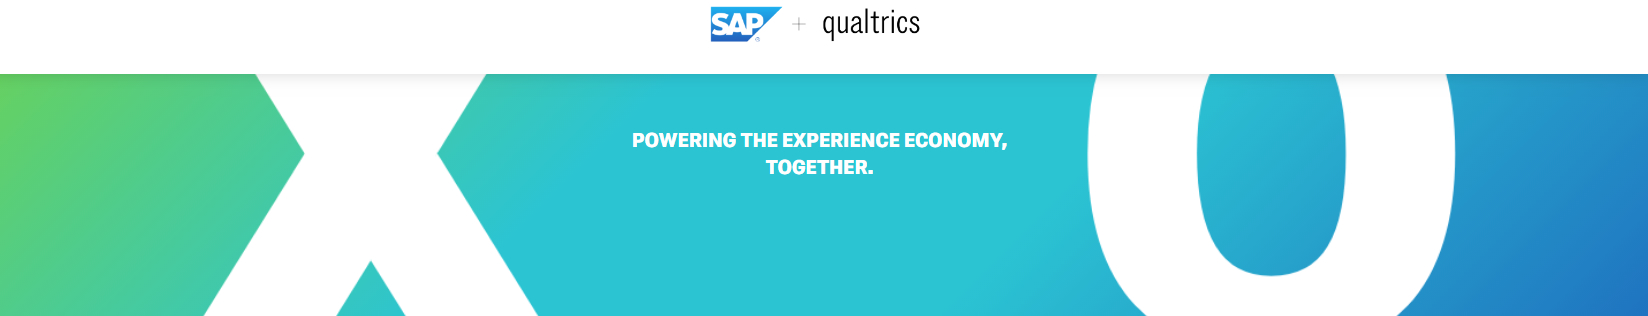 sap qualtrics banner